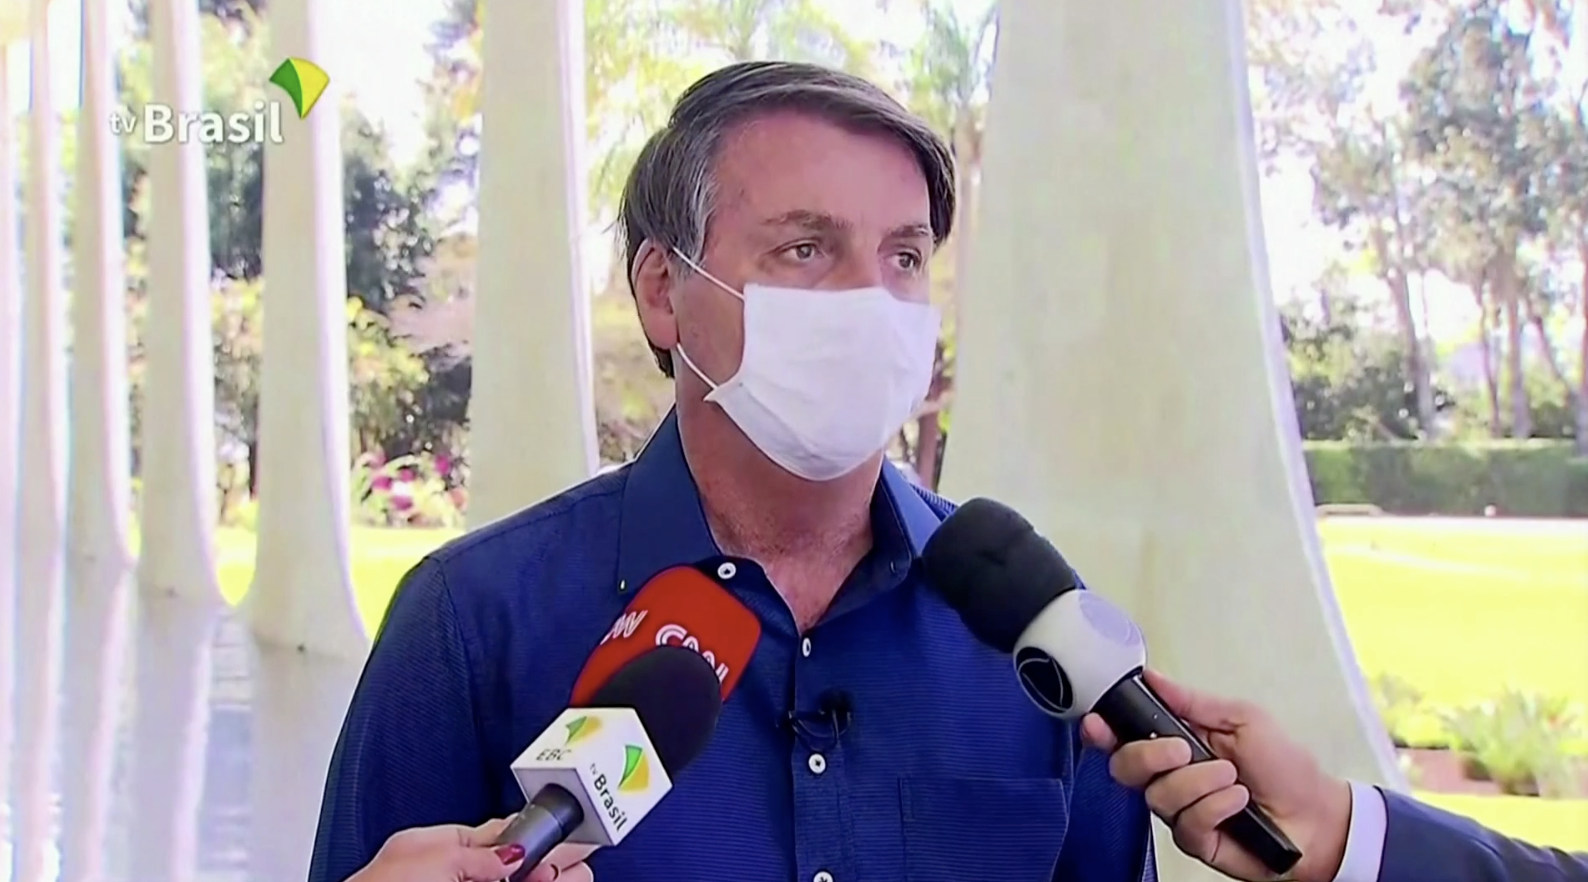 Brazil's Bolsonaro tests positive for coronavirus after months of downplaying risks - channel 4